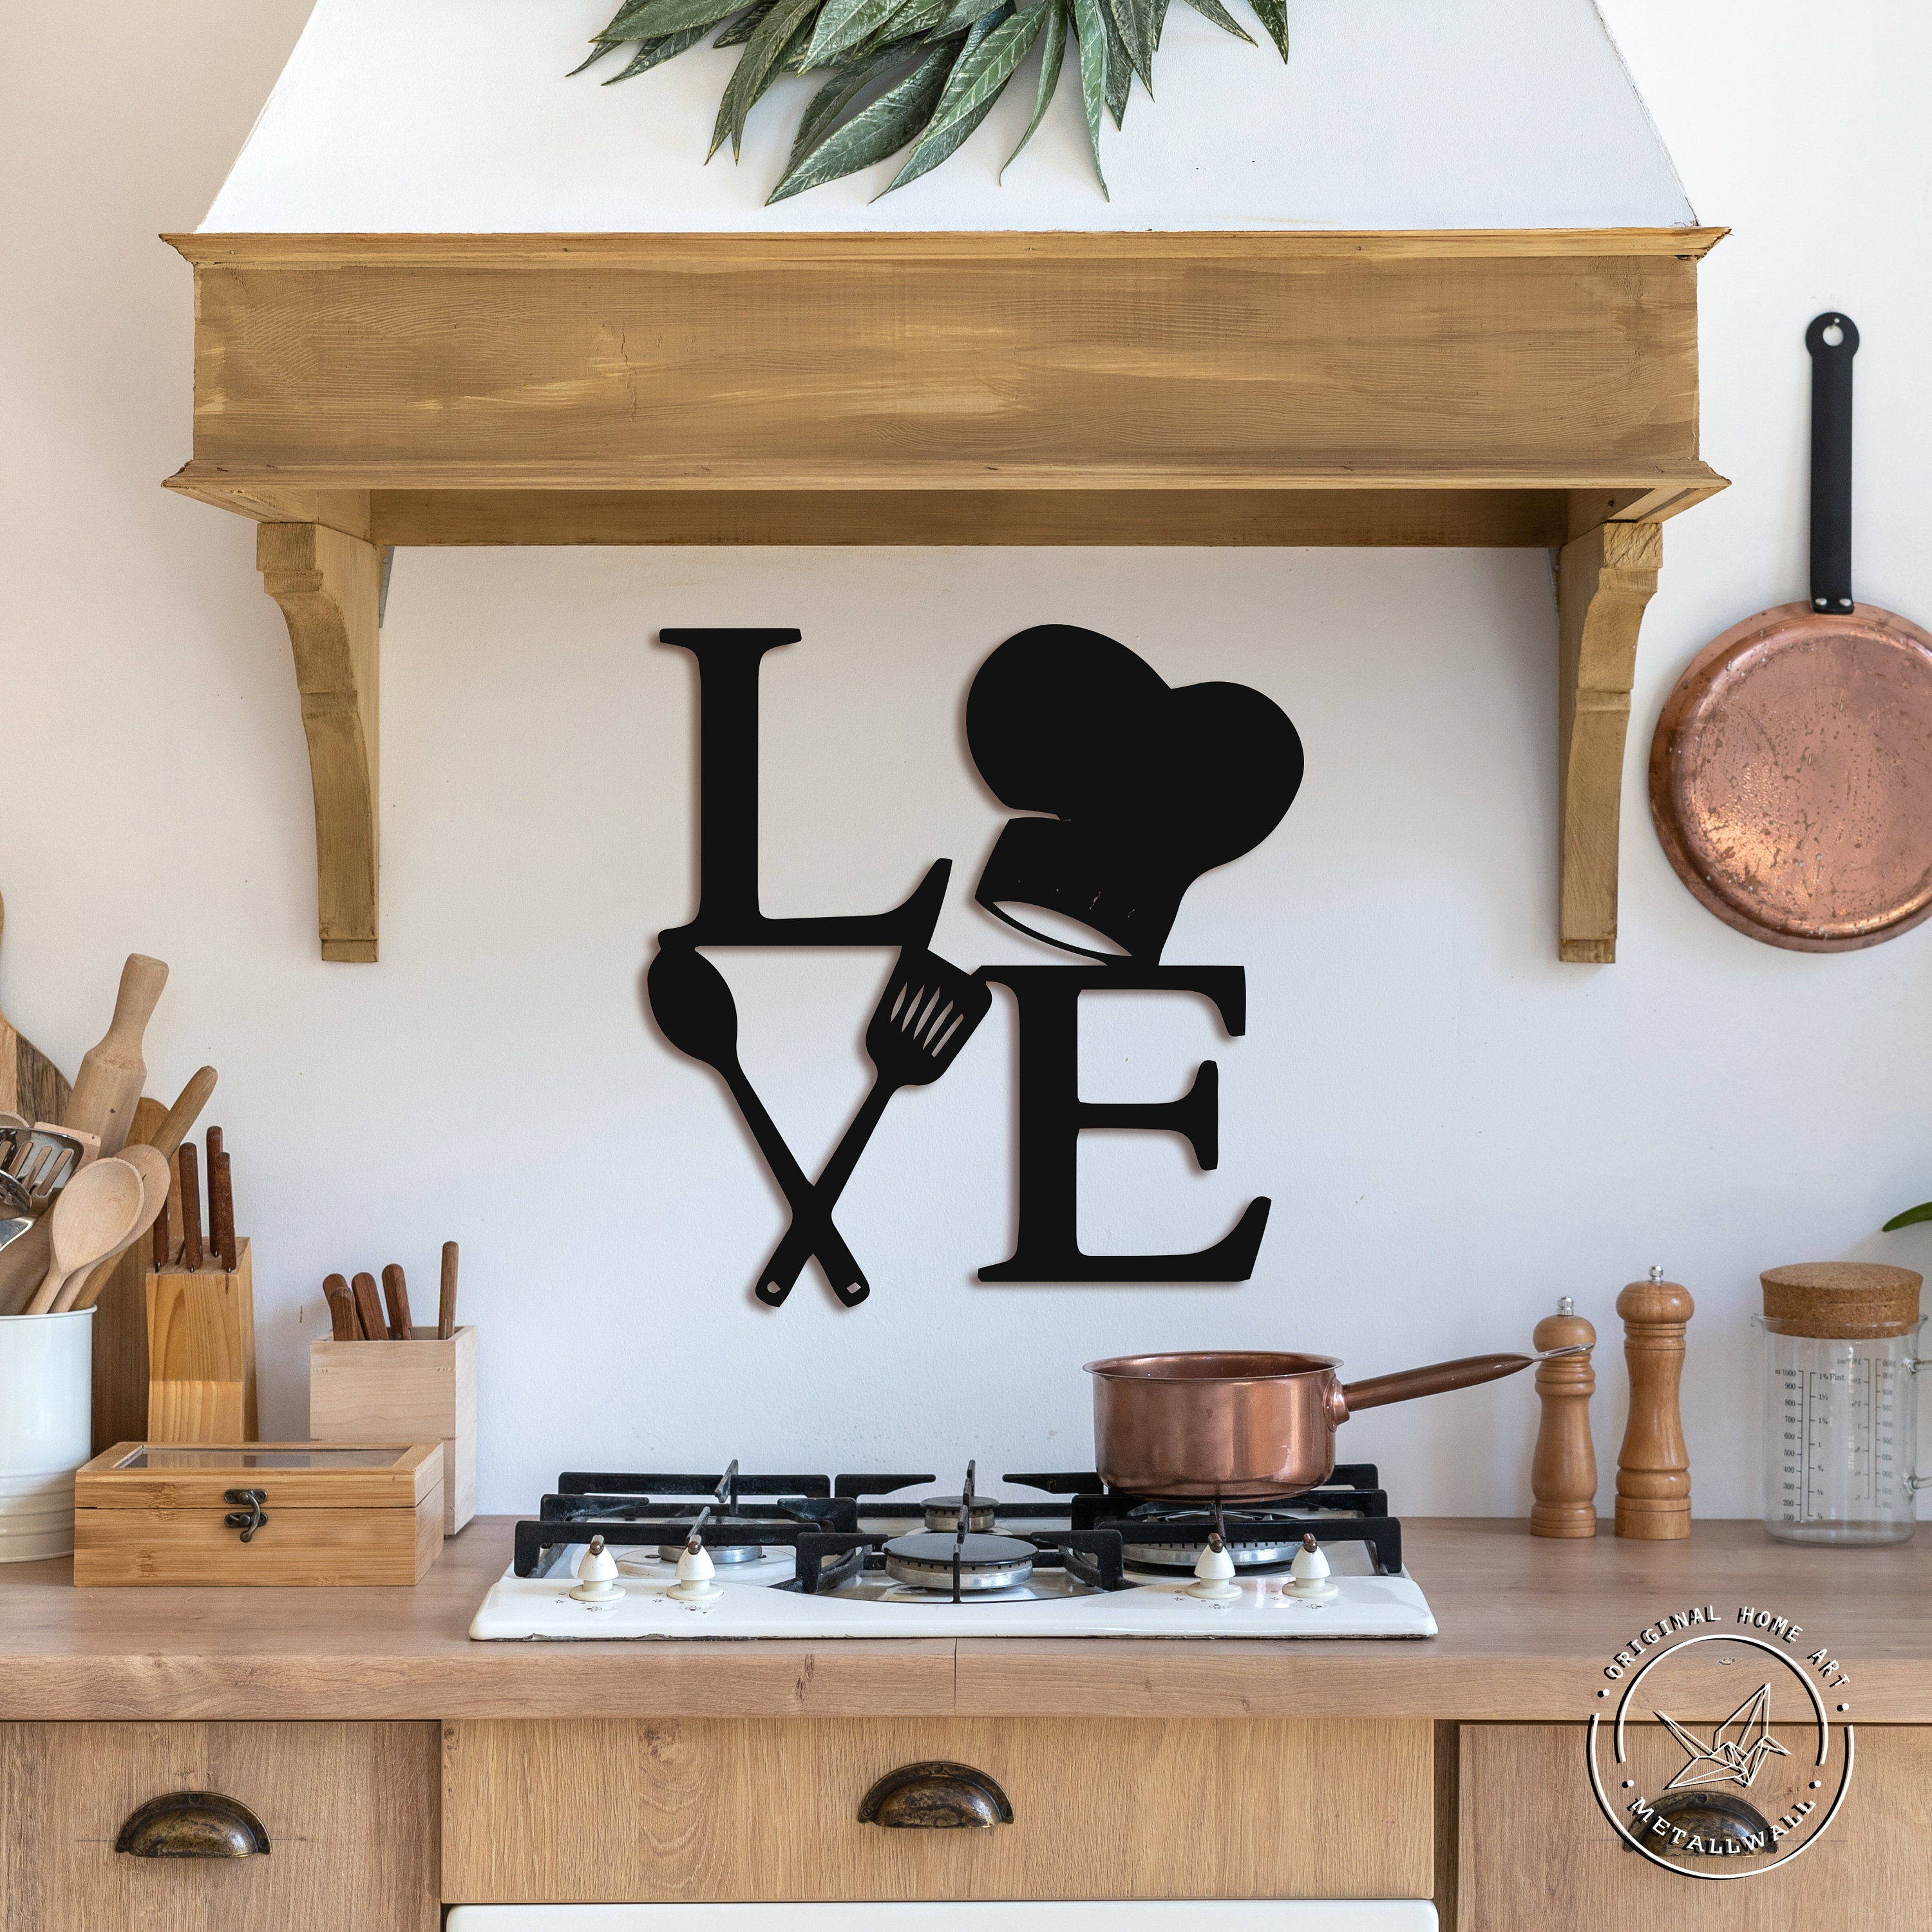 Quote Wall Sign Kitchen wall signs Wall Hanging Housewarming Gift This kitchen is seasoned with Love Metal Wall Art Metall Letters